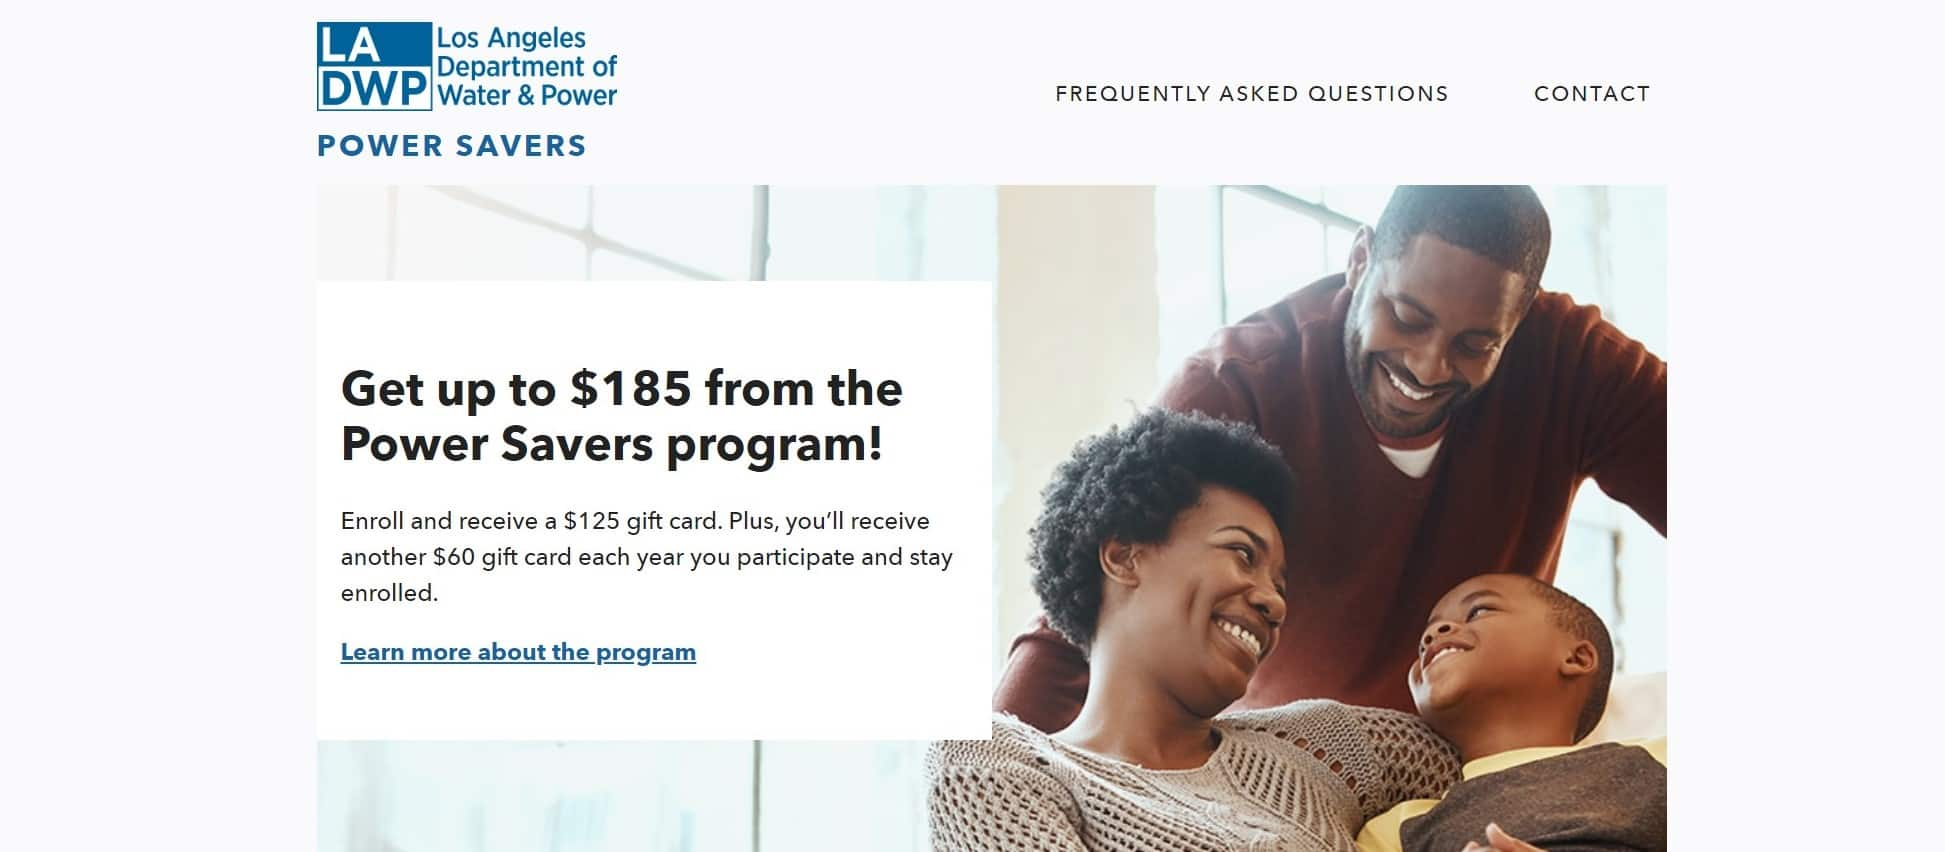 LADWP (Los Angeles Department Of Water and Power) Enroll Ecobee, Honeywell, Alarm.com, Lux, Vivinit, Sensi, Radio Thermostat, Nest Thermostat and receive FREE $125 Amazon gift card